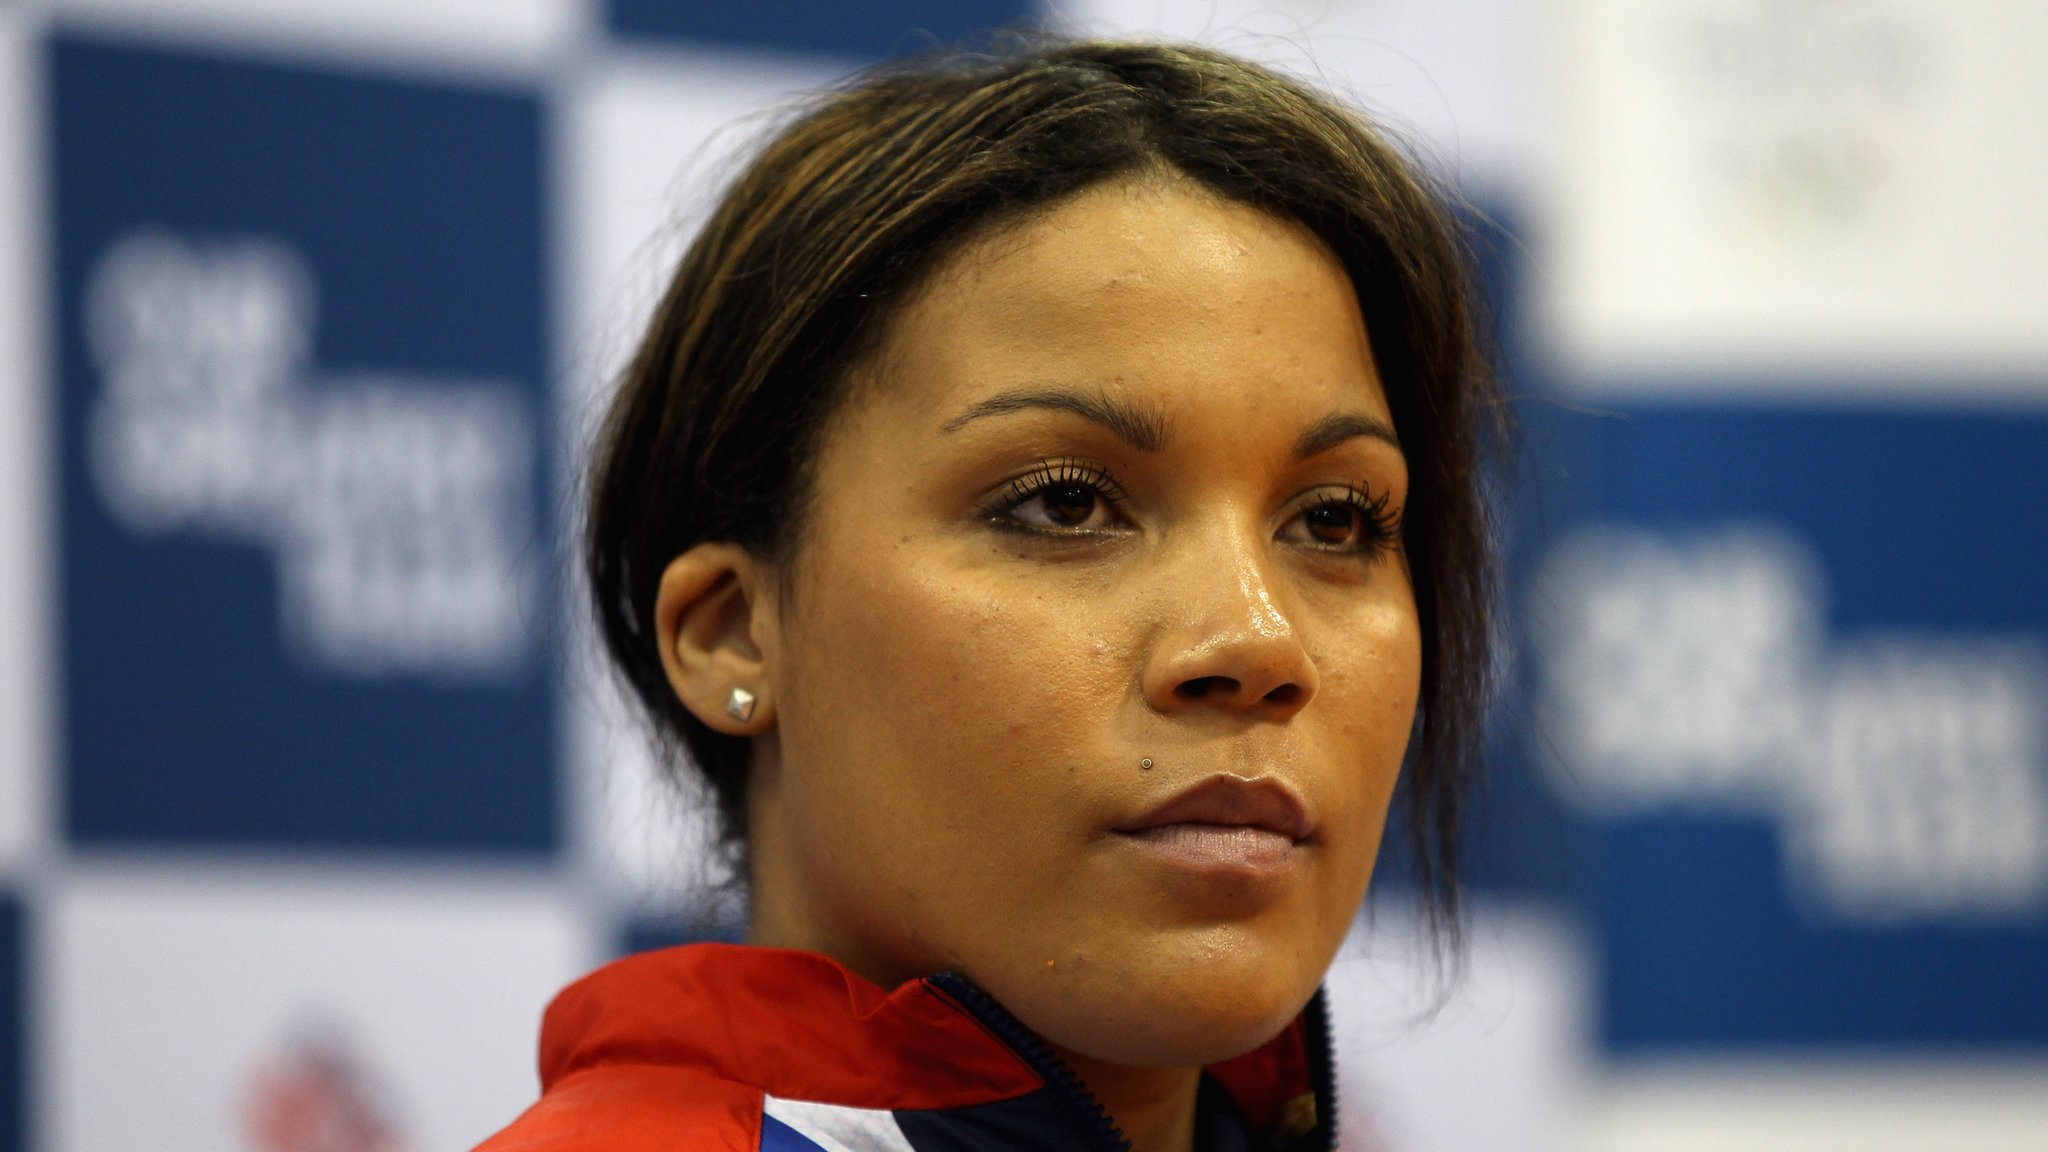 BMX and track world champion Shanaze Reade retires from cycling